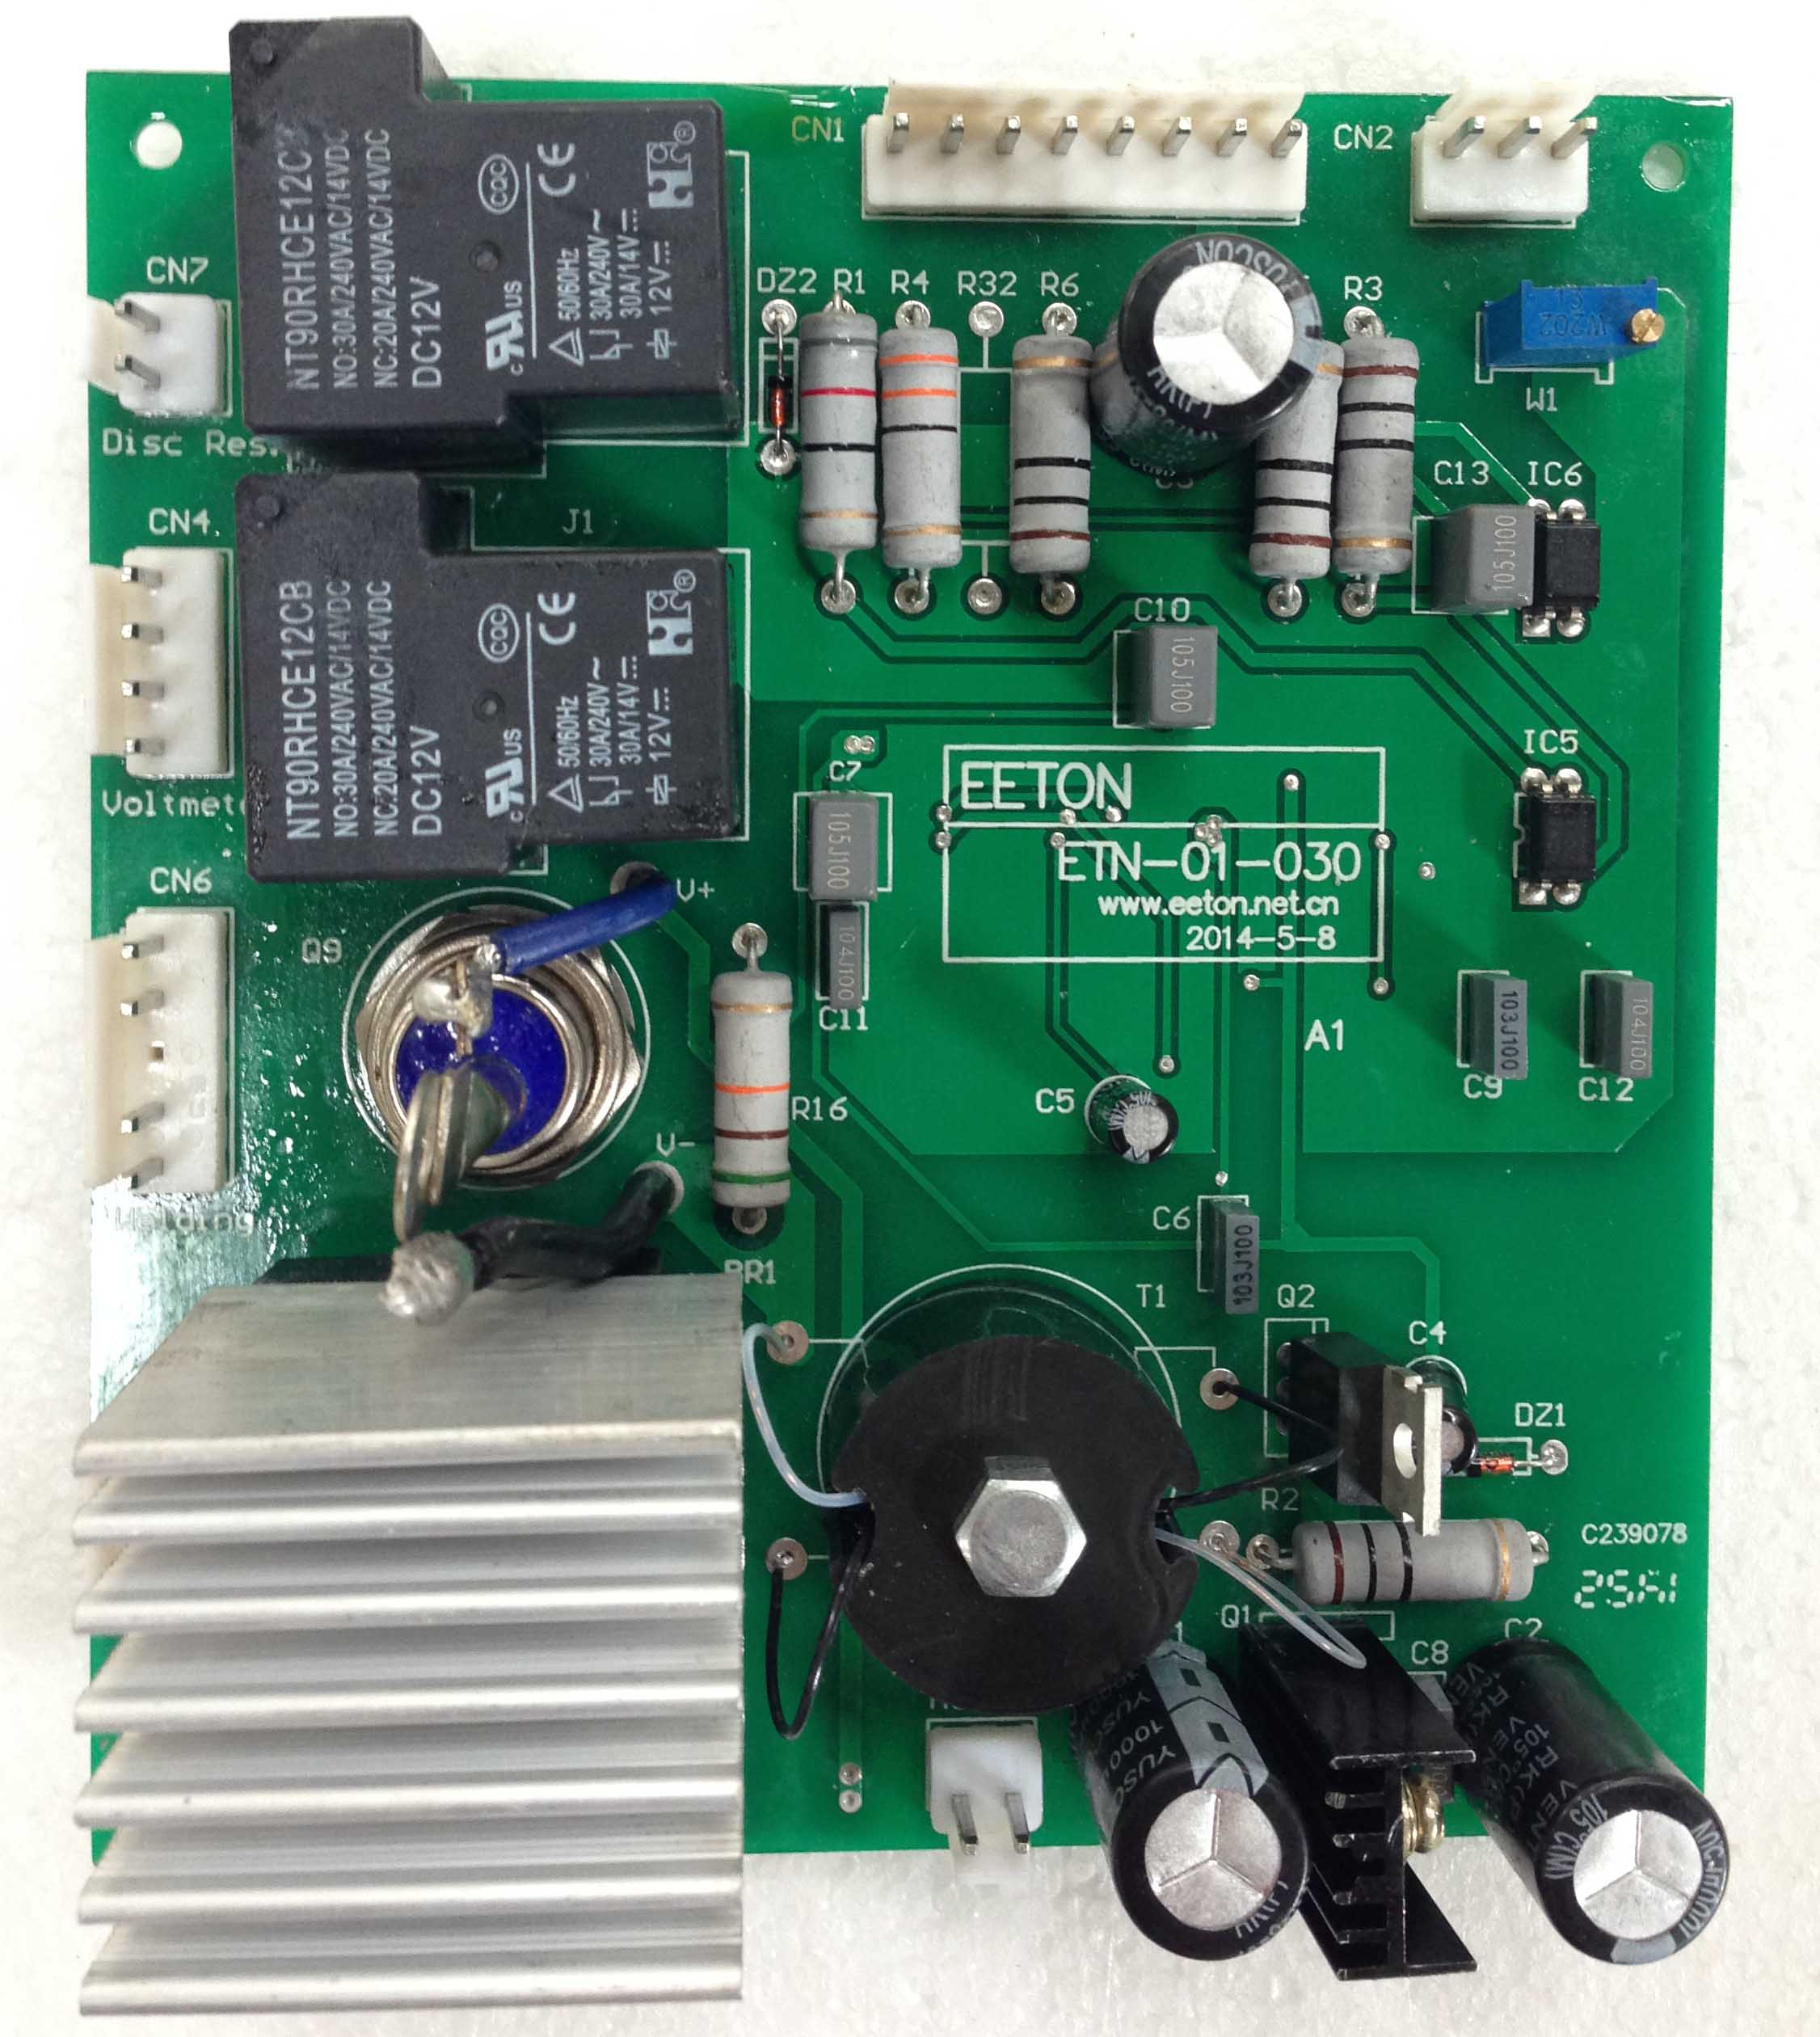 Capacitor energy storage stud welding control board RSR1600 RSR2500 320pc capacitor discharge welding studs ws 320